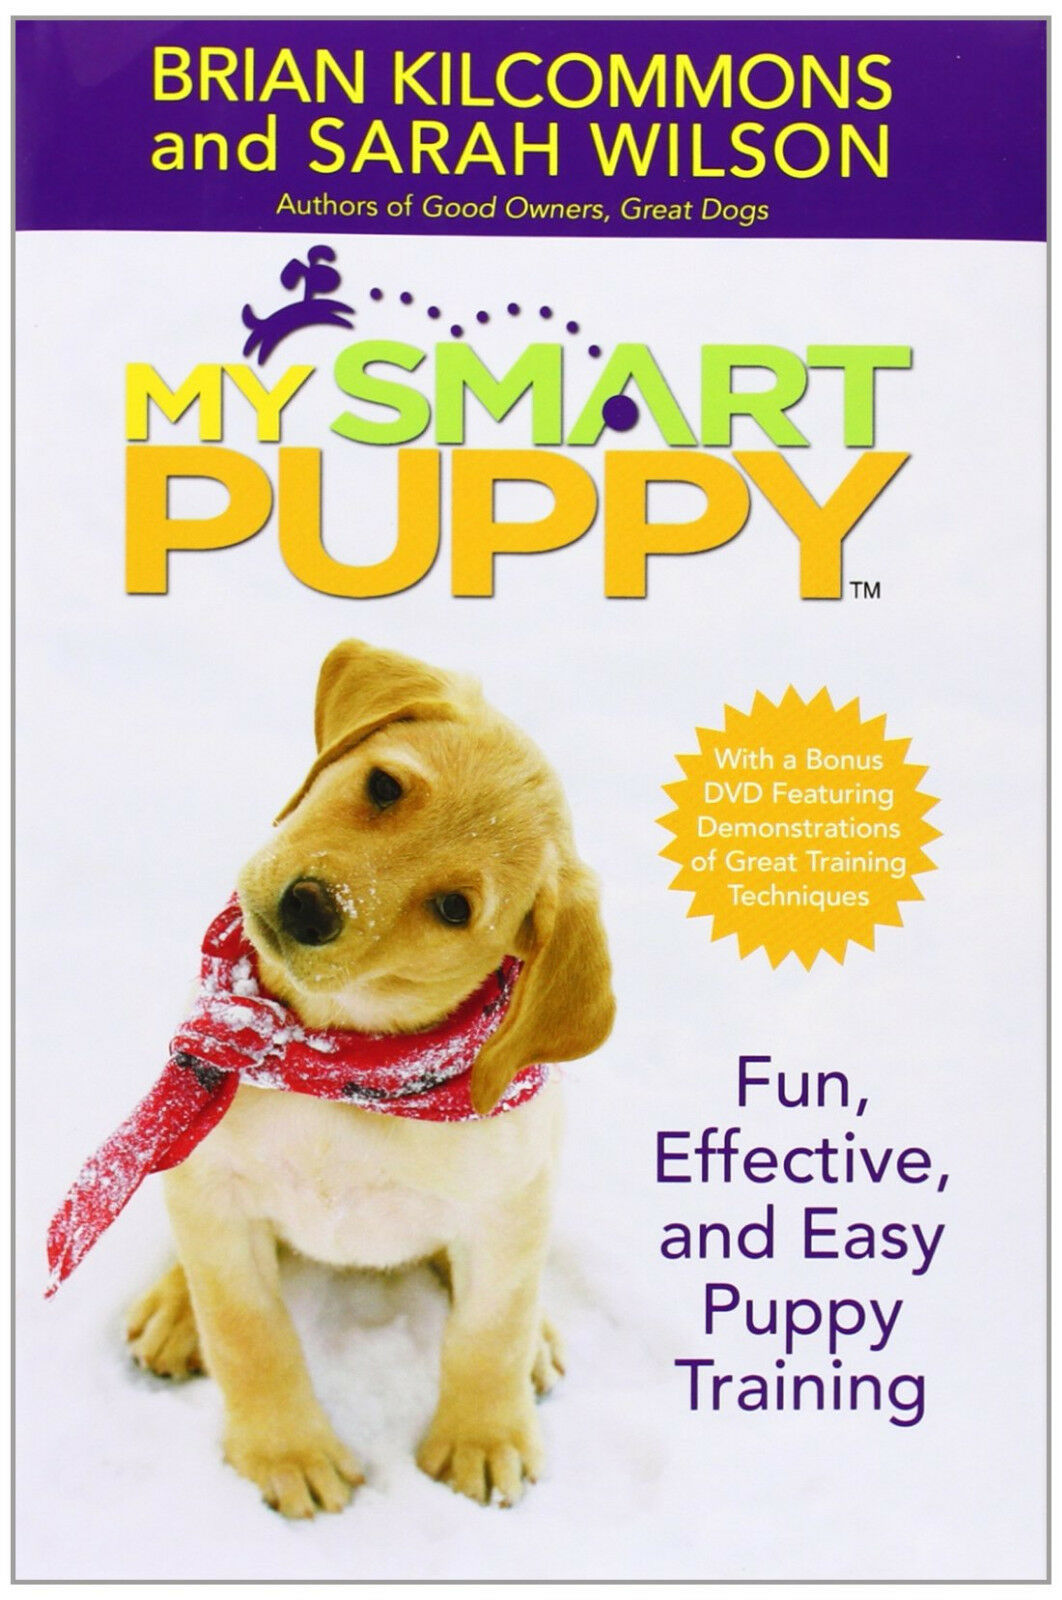 My Smart Puppy : Kilcommons & Wilson : VG Hardcover Book with Training DVD